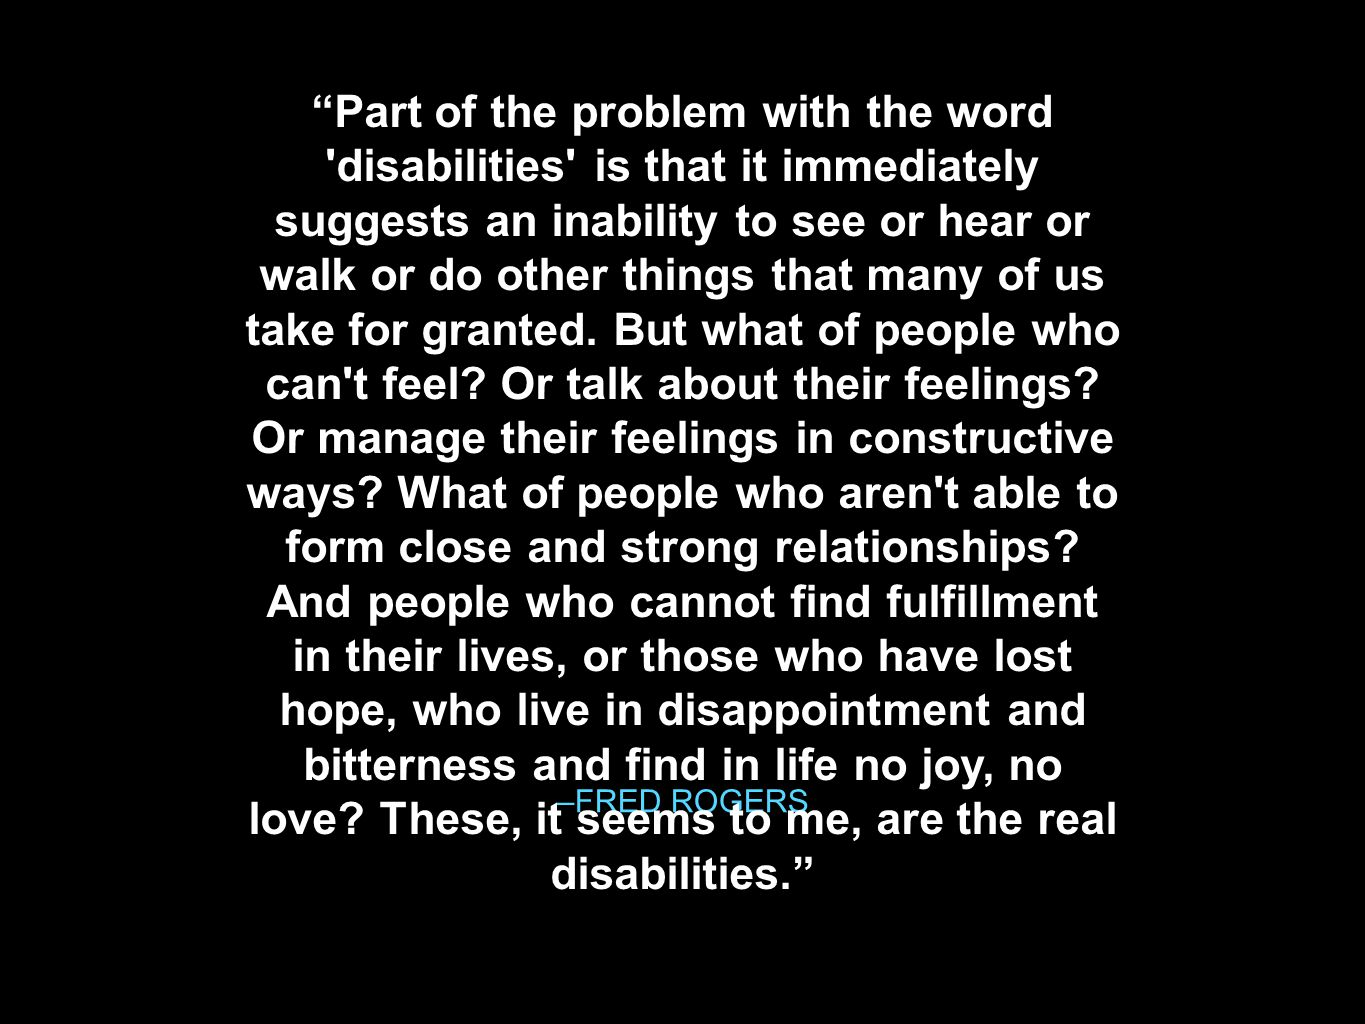 –FRED ROGERS Part of the problem with the word disabilities is that it immediately suggests an inability to see or hear or walk or do other things that many of us take for granted.